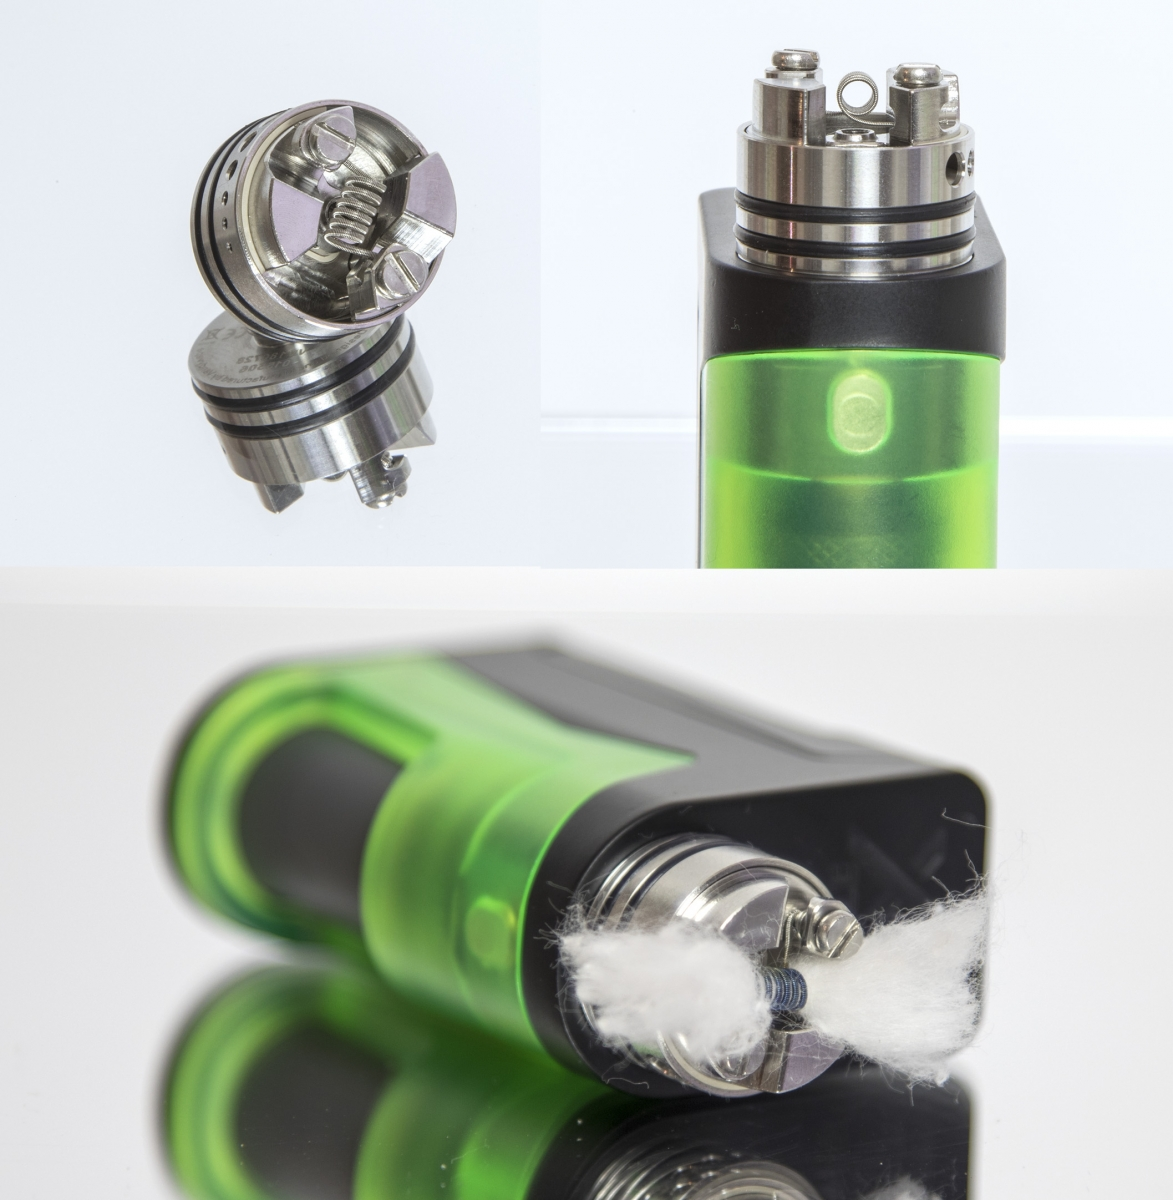 Vapefly Holic with coil